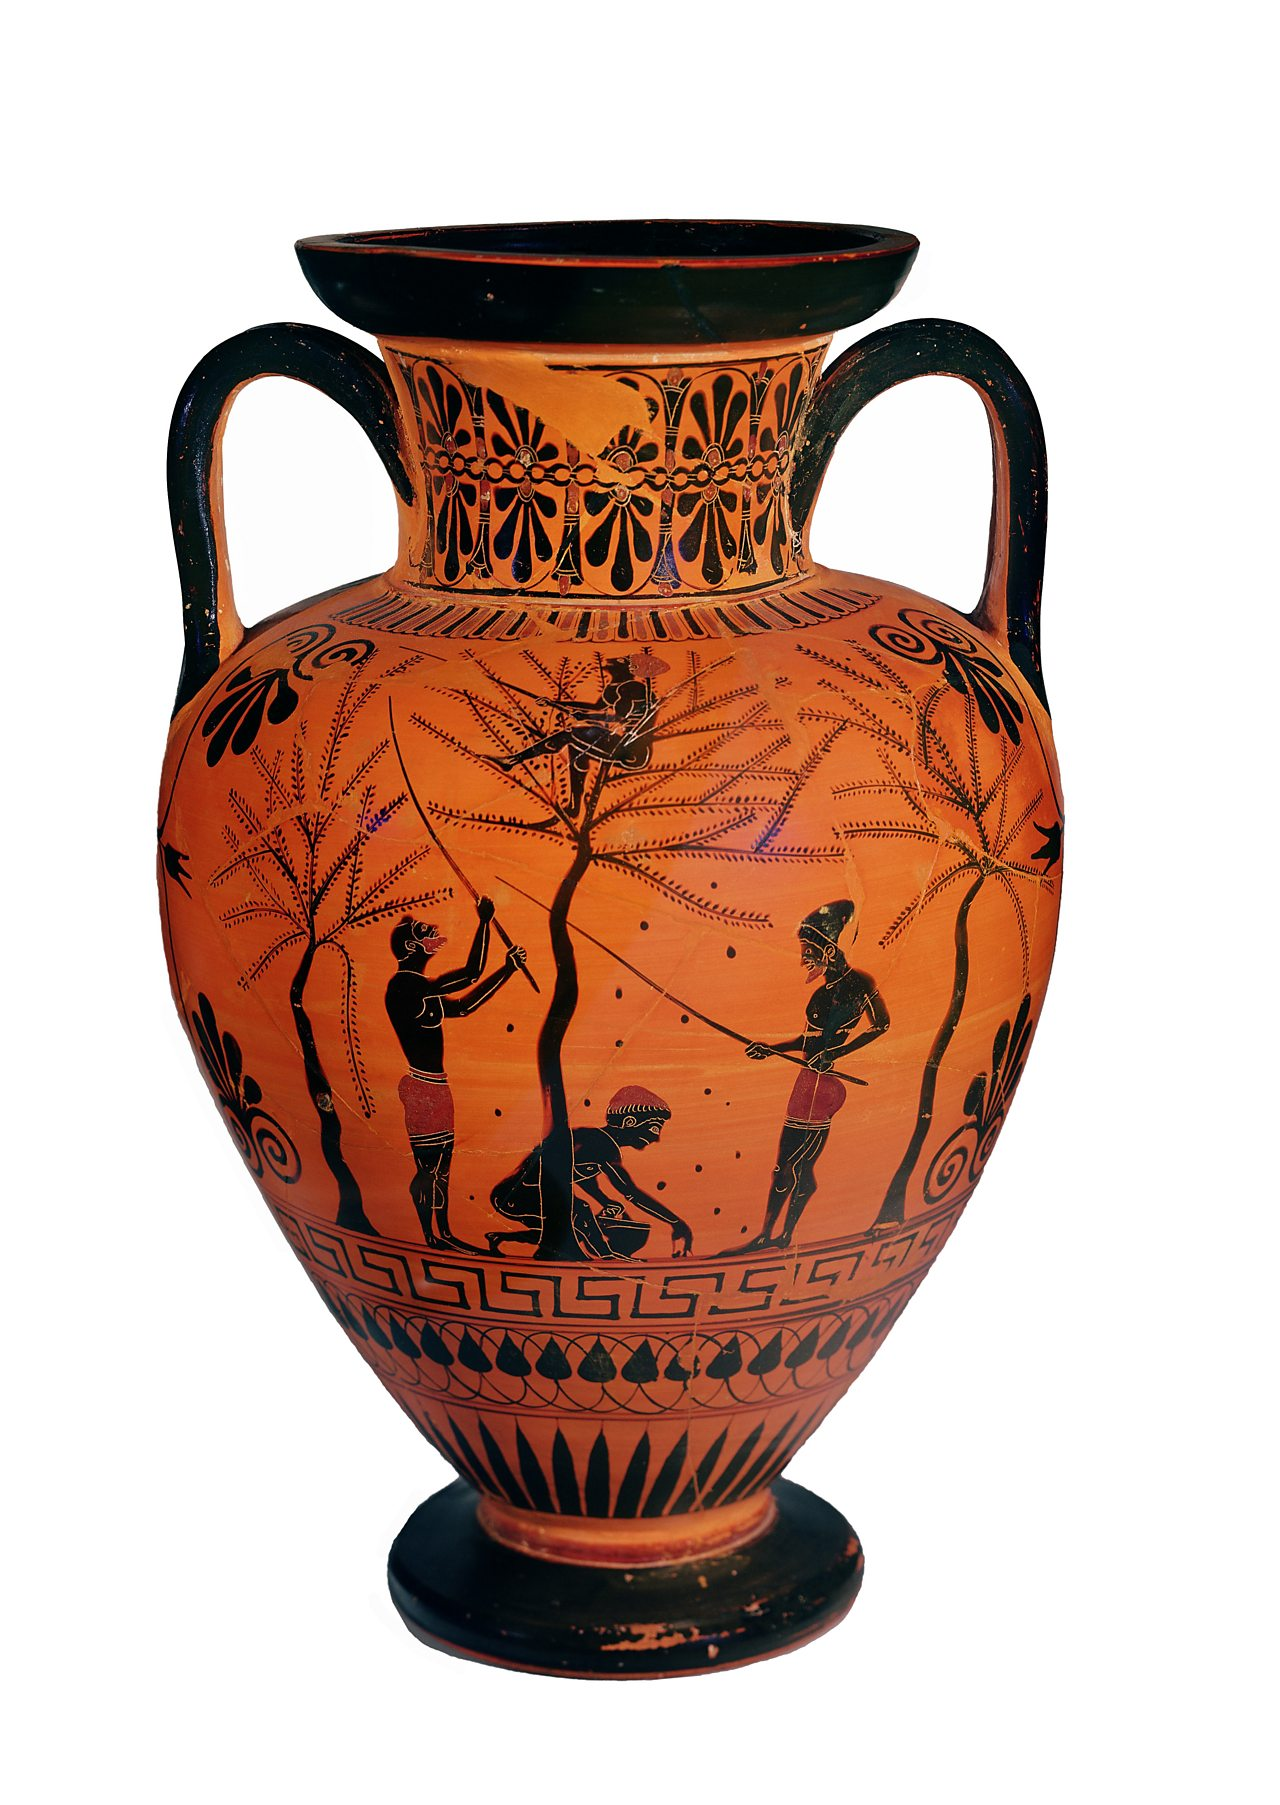 A ancient Greek jar showing people harvesting olives.